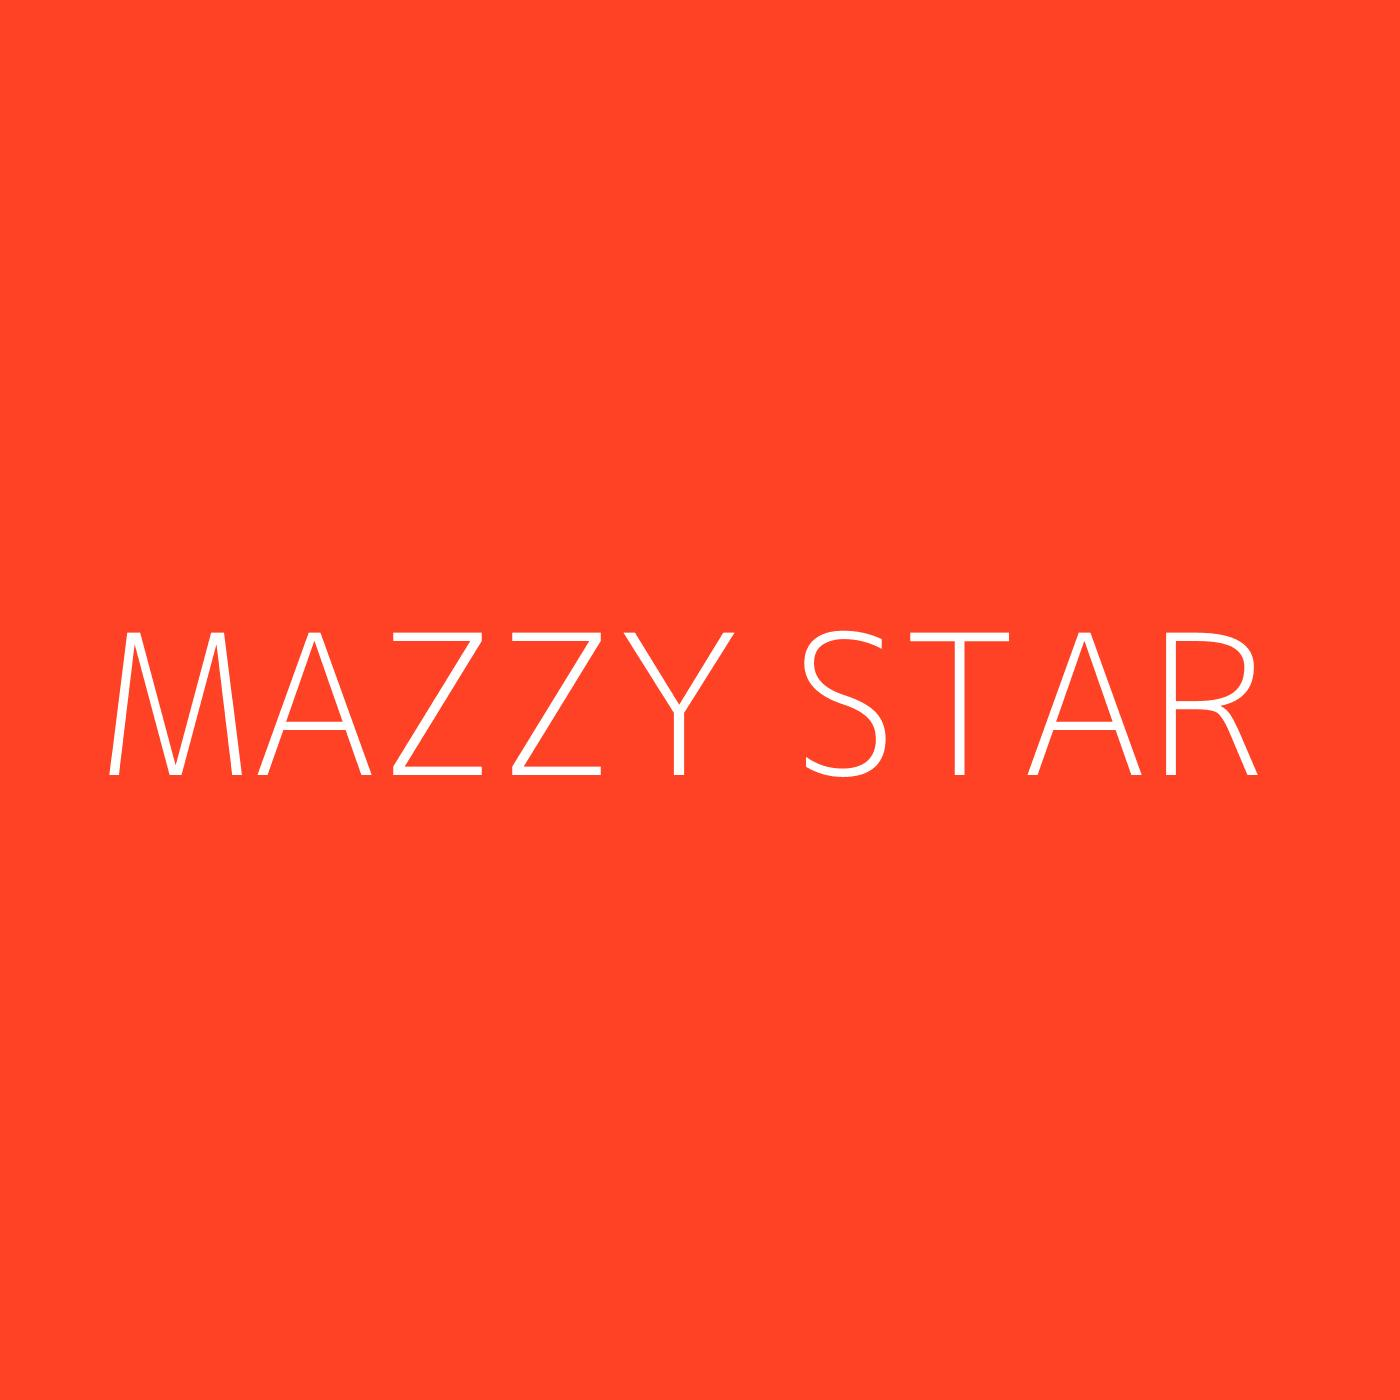 Mazzy Star Playlist Artwork